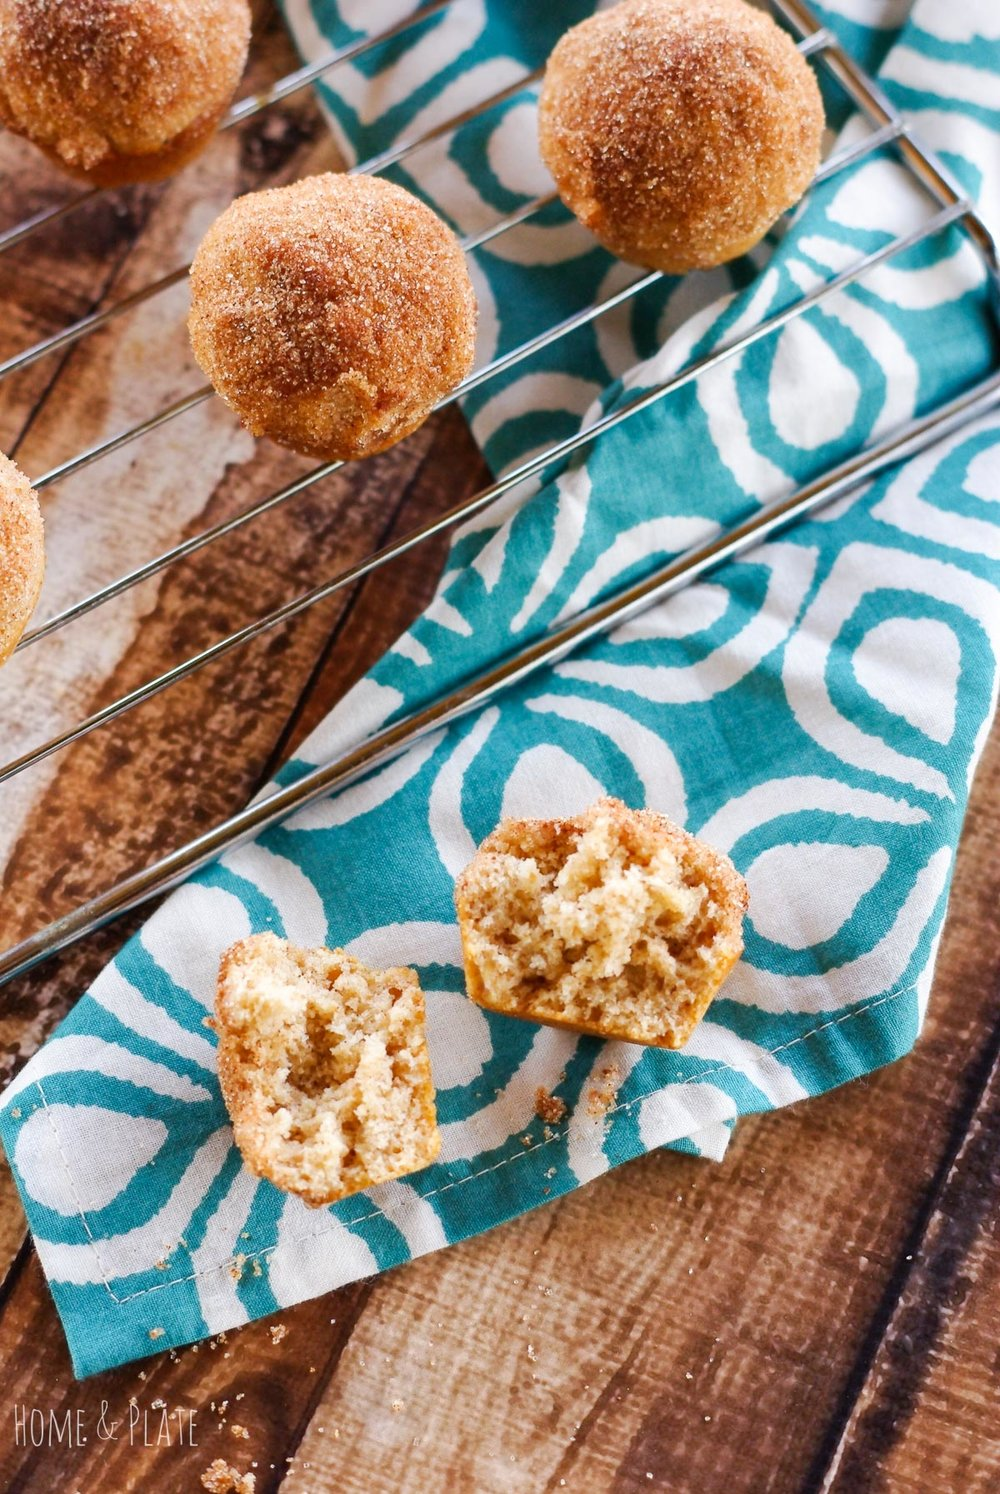 Cinnamon Sugar Buttermilk Muffins | www.homeandplate.com | Buttermilk is the secret to these moist and delicious Cinnamon Sugar Muffins. Serve them for breakfast or snack any time of the day.